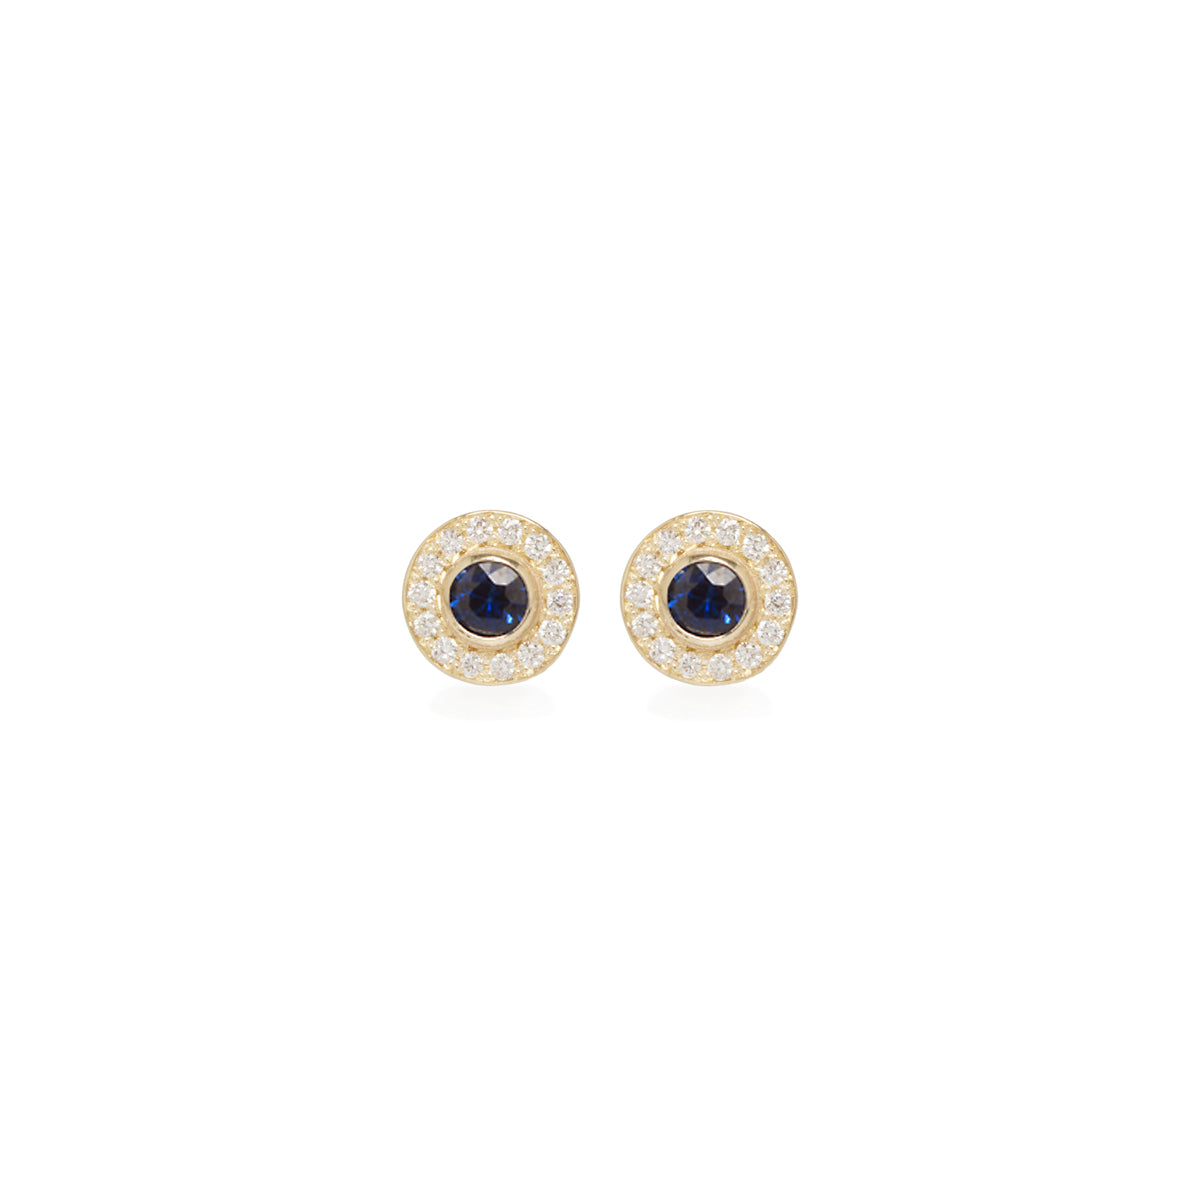 14k round sapphire studs with pave halo